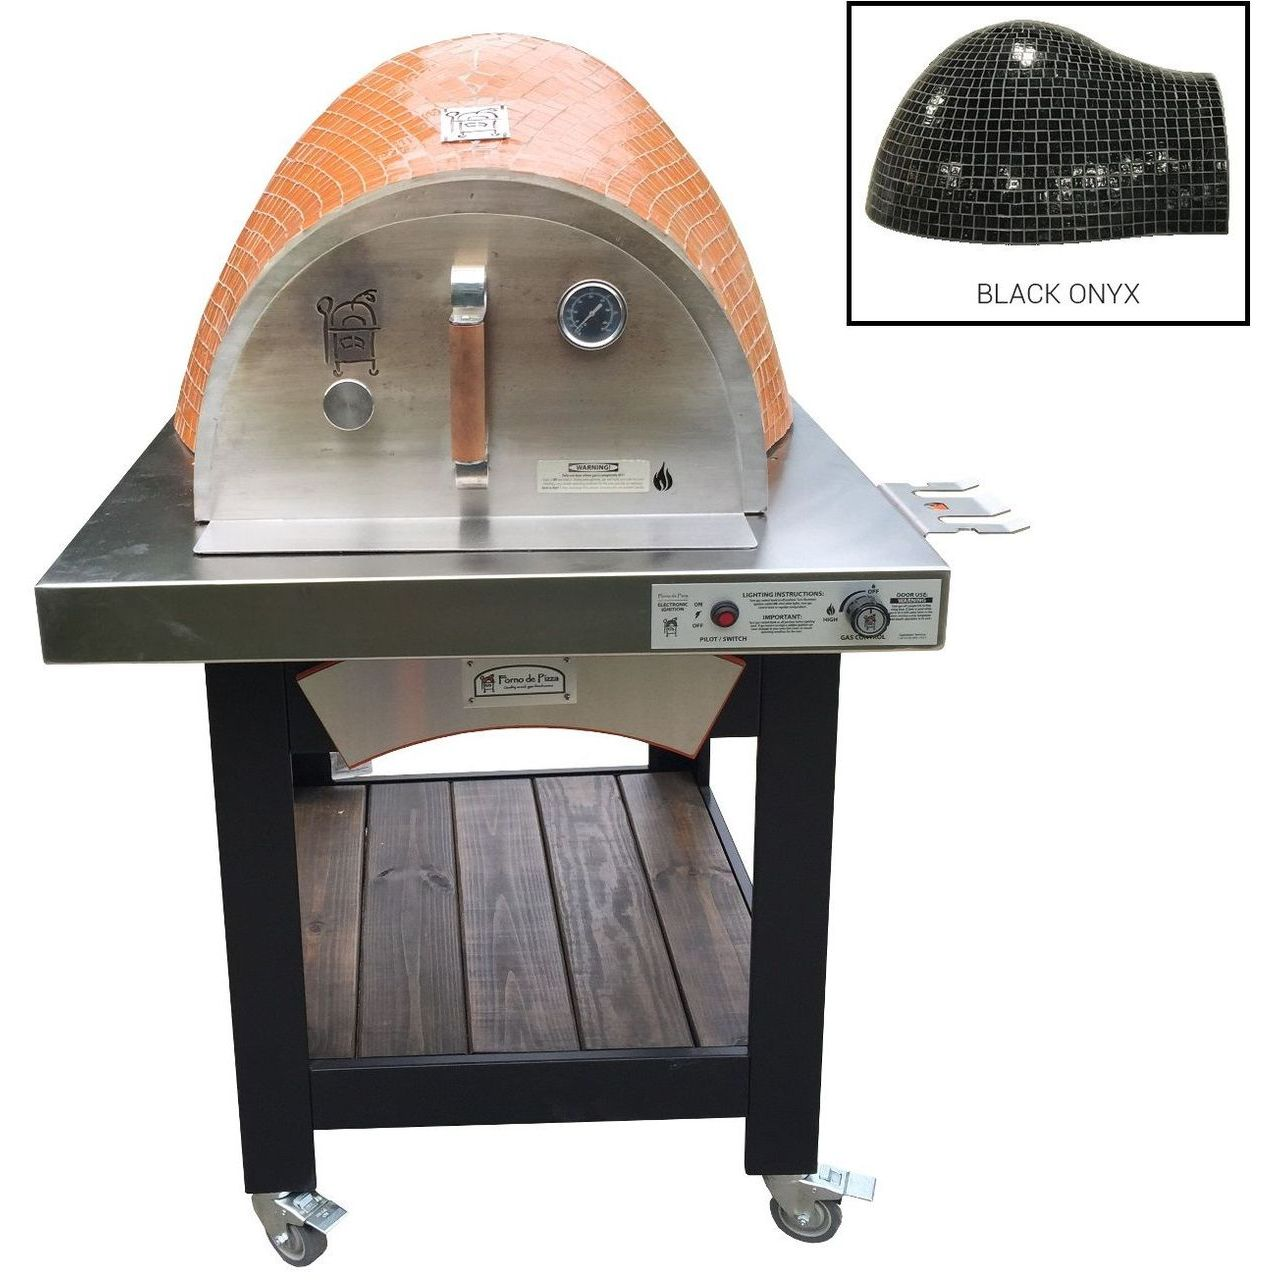 HPC Forno Hybrid Gas/Wood Oven With EI & Cart in Black Onyx - NG